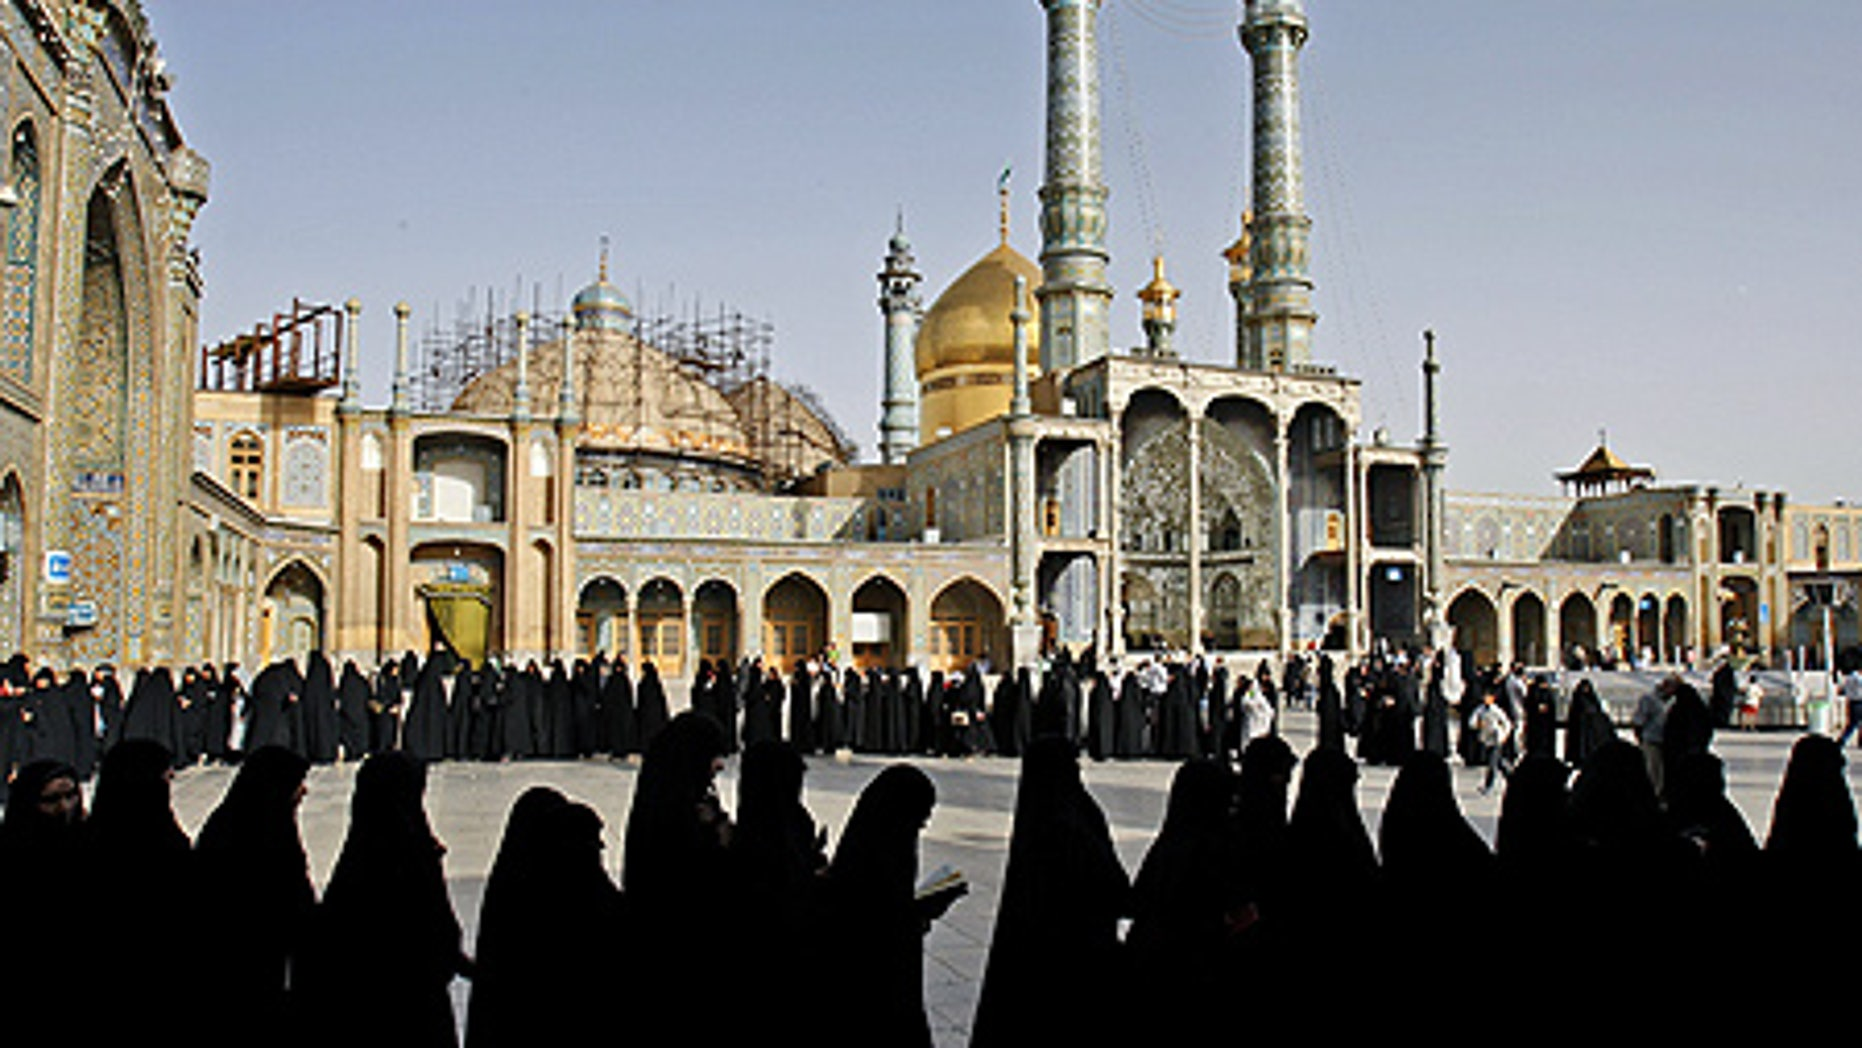 June 12: Iranian women stand in line to cast their votes at Masoumeh shrine in Qum, south of Tehran, Iran.